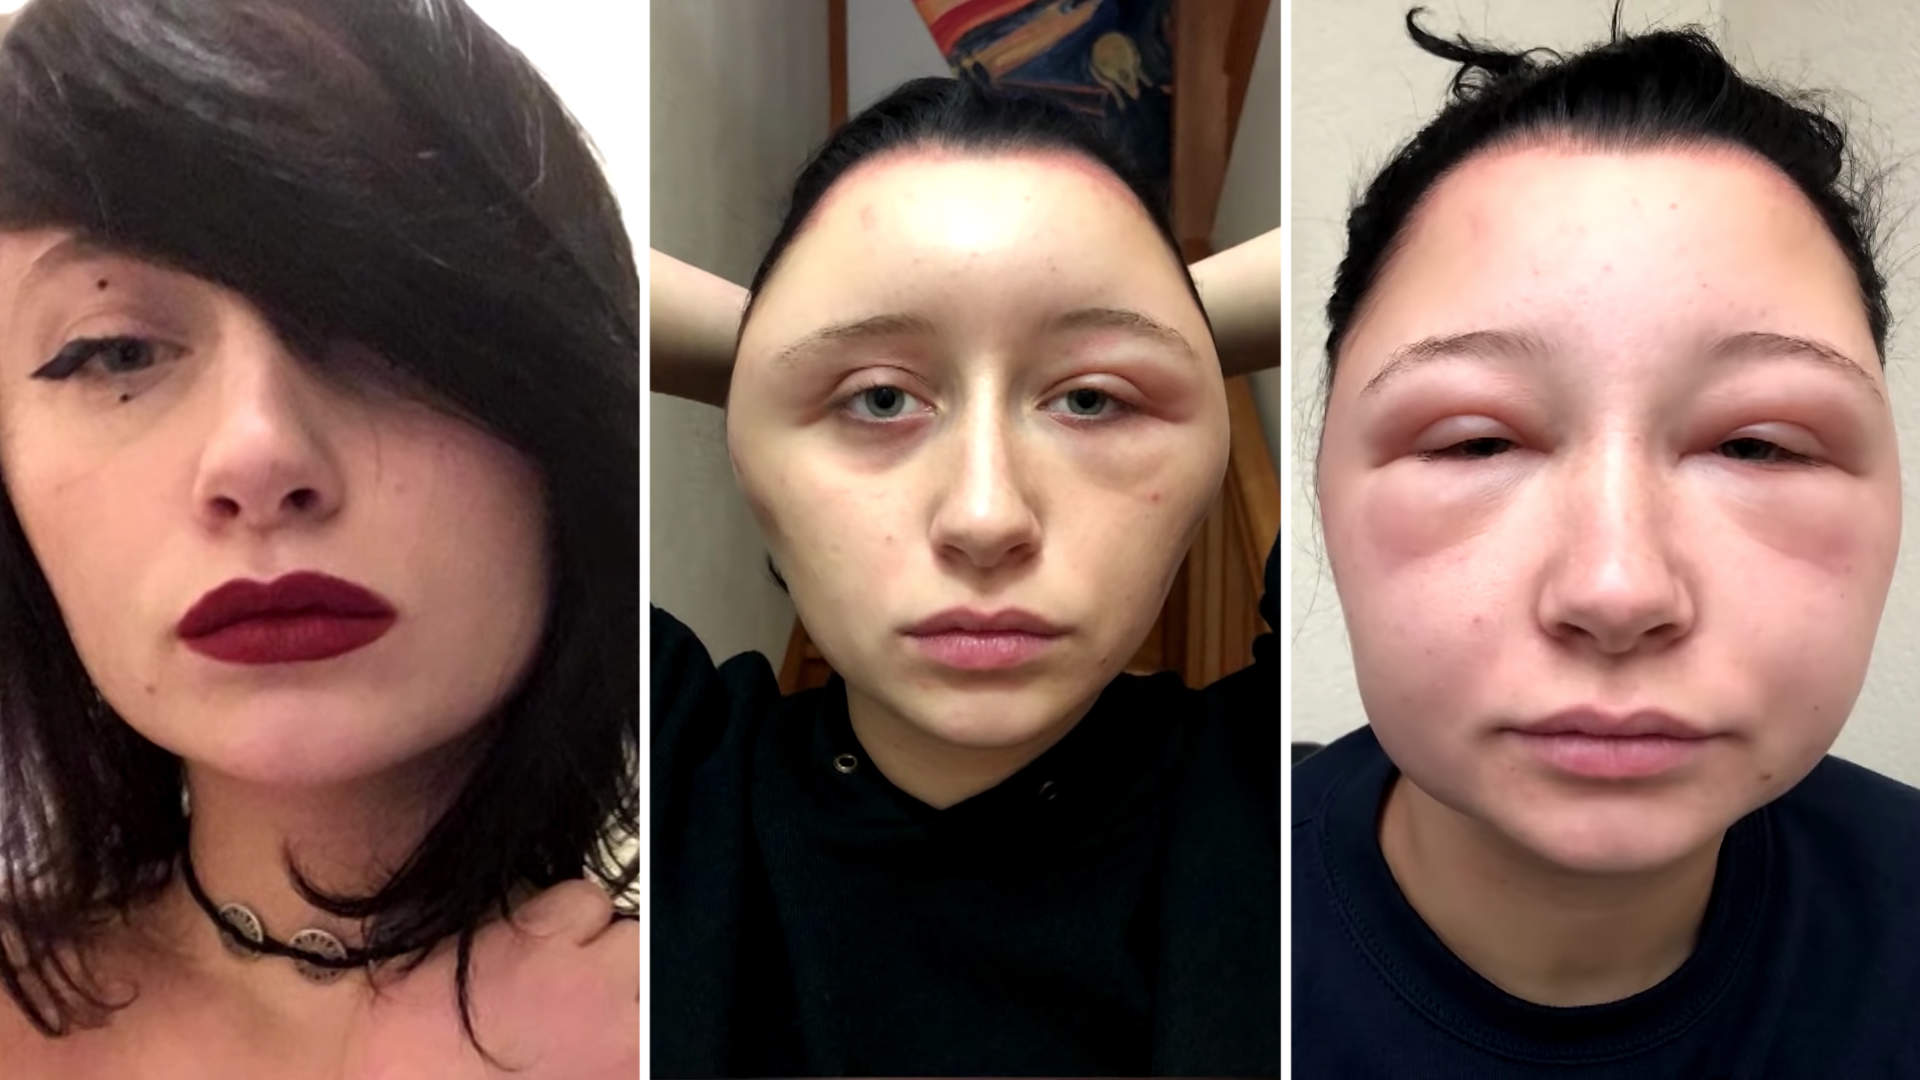 Woman's Head 'Doubles In Size' After Allergic Reaction To Hair Dye